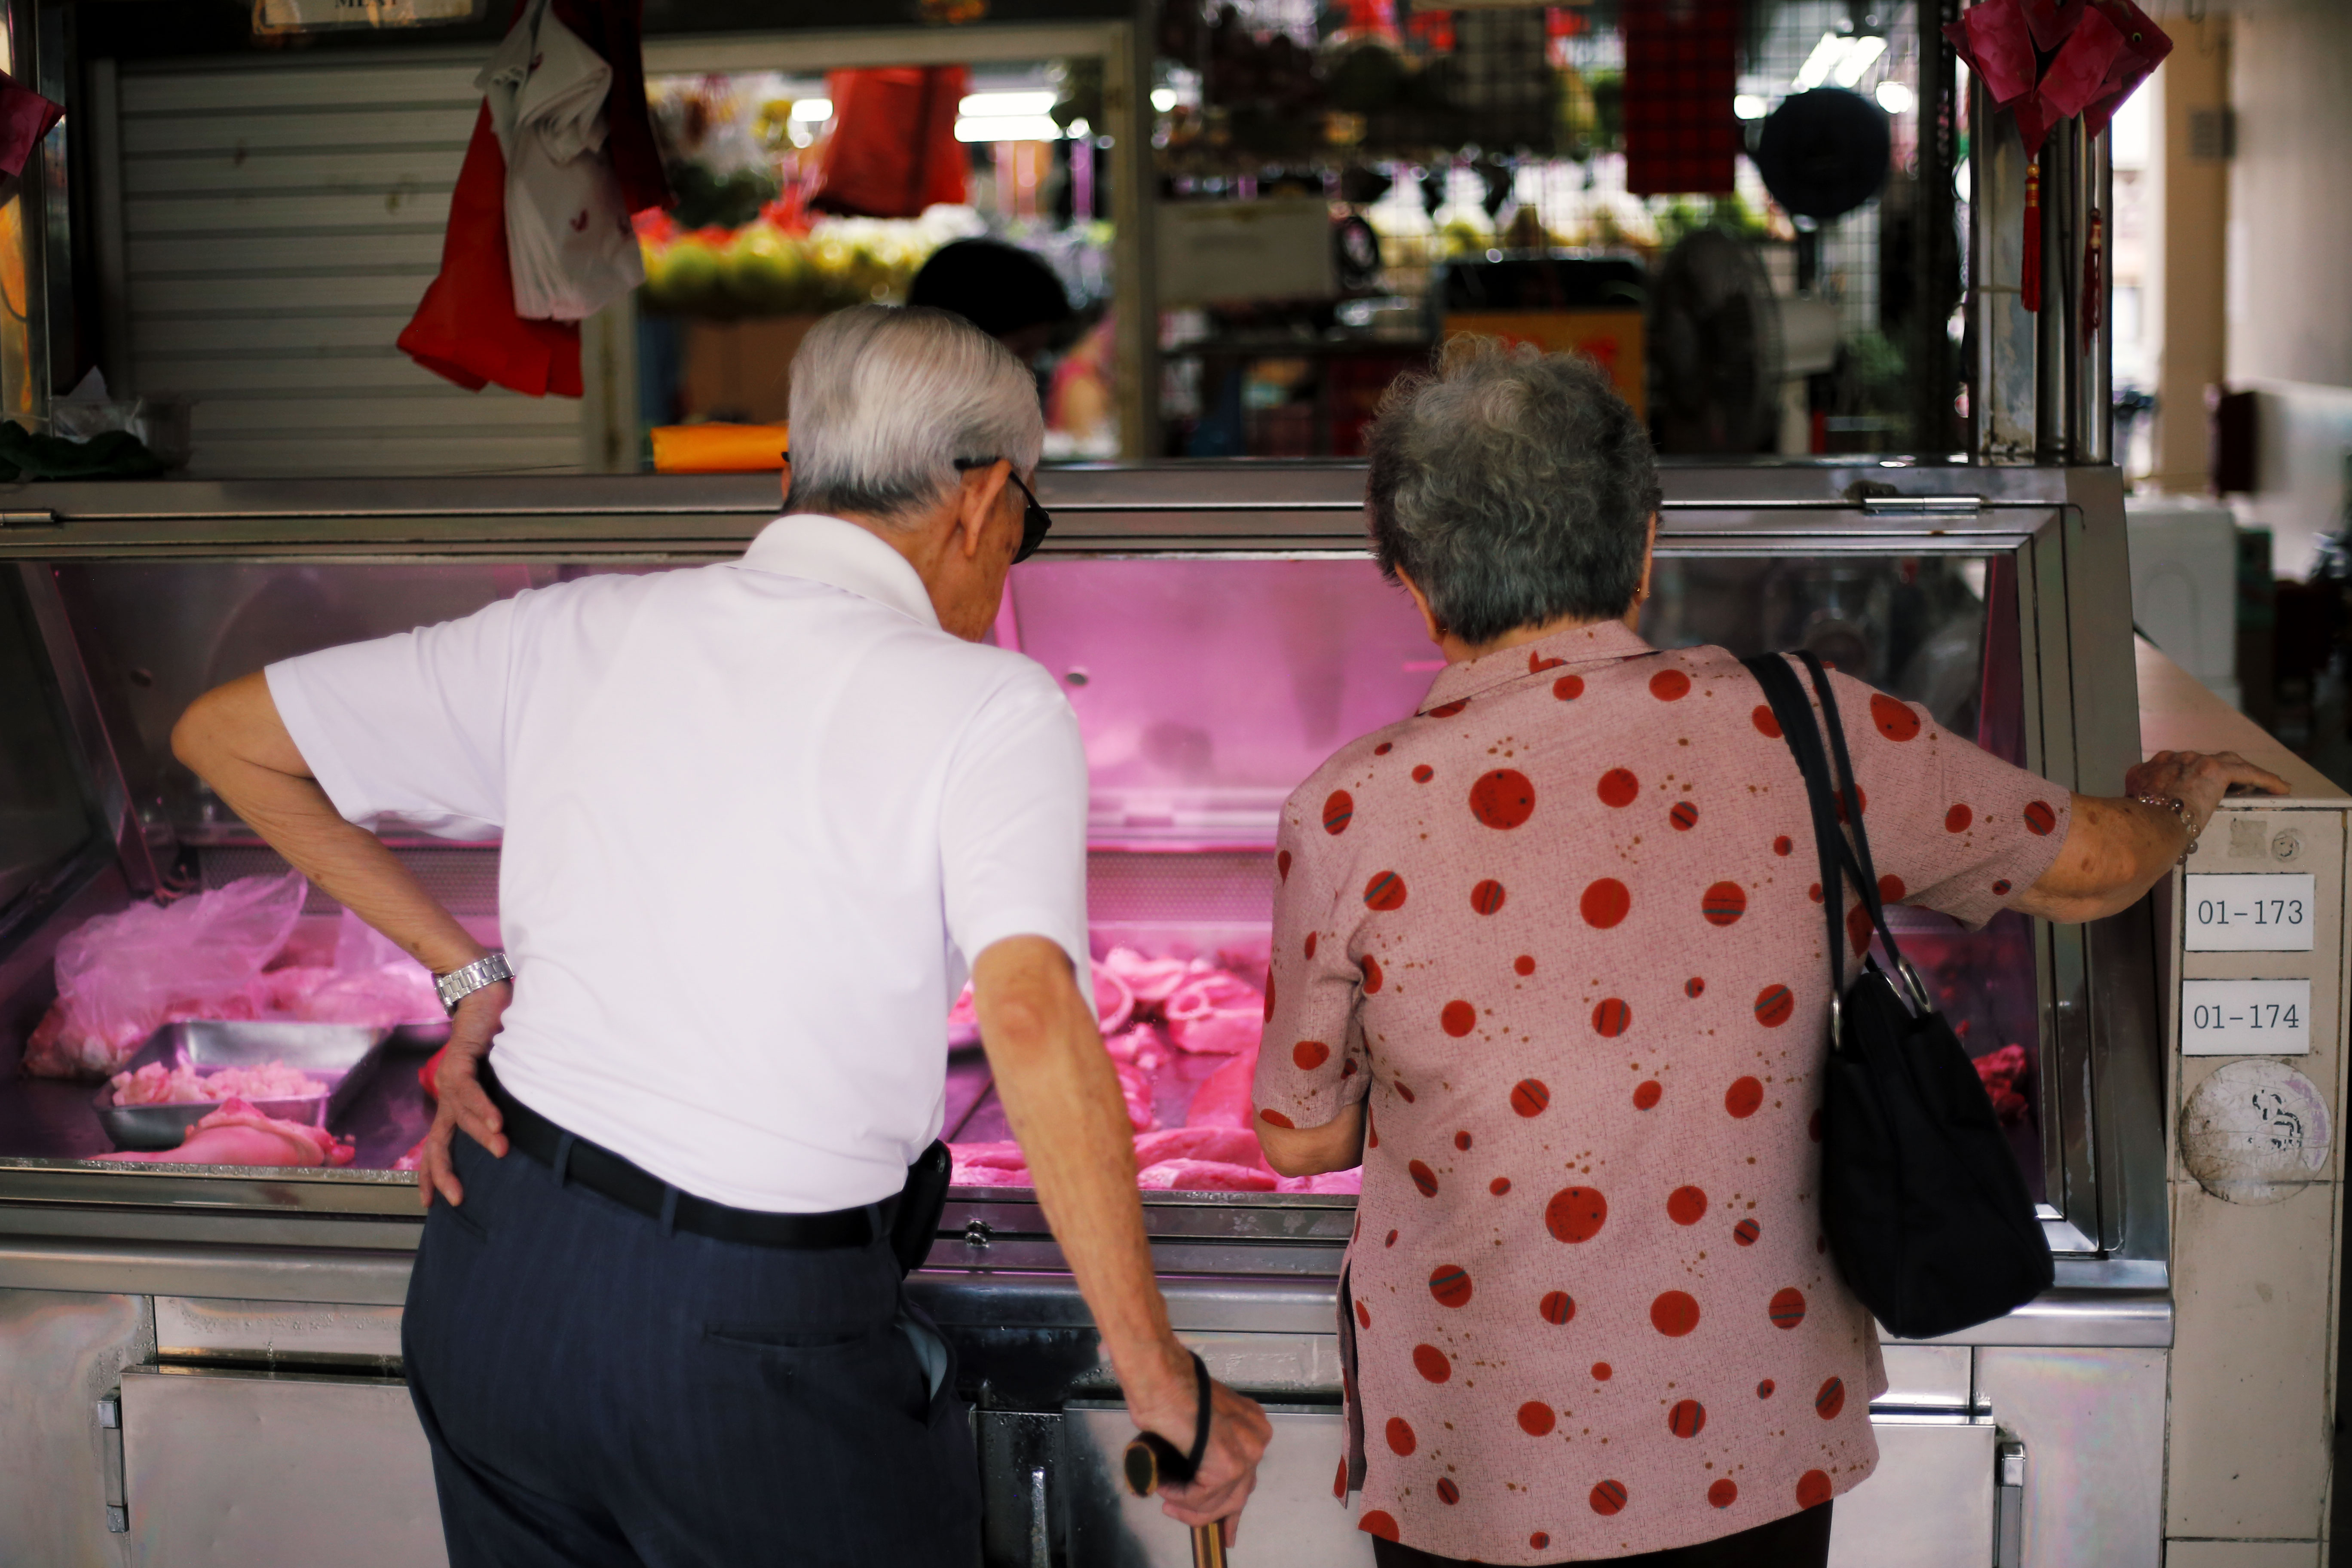 Younger Singaporeans Also Care About 'Bread and Butter' Issues